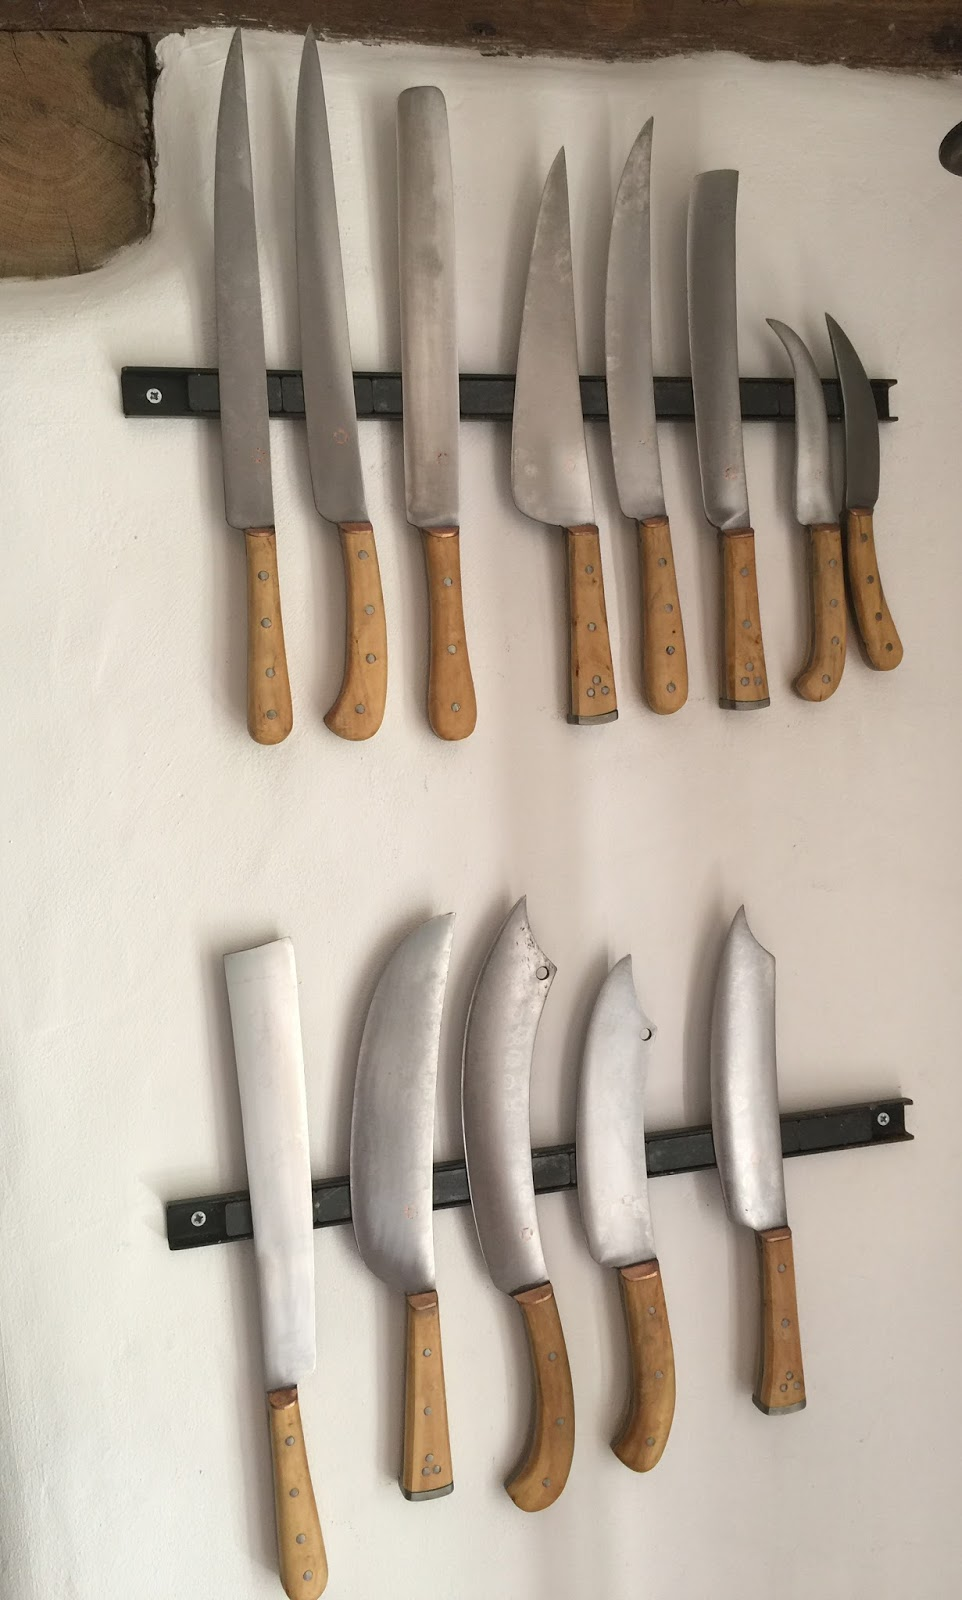 food history jottings silent culinary witnesses all the scappi knives in the woodcut above in my kitchen there are surviving kitchen knives from the medieval and early modern periods